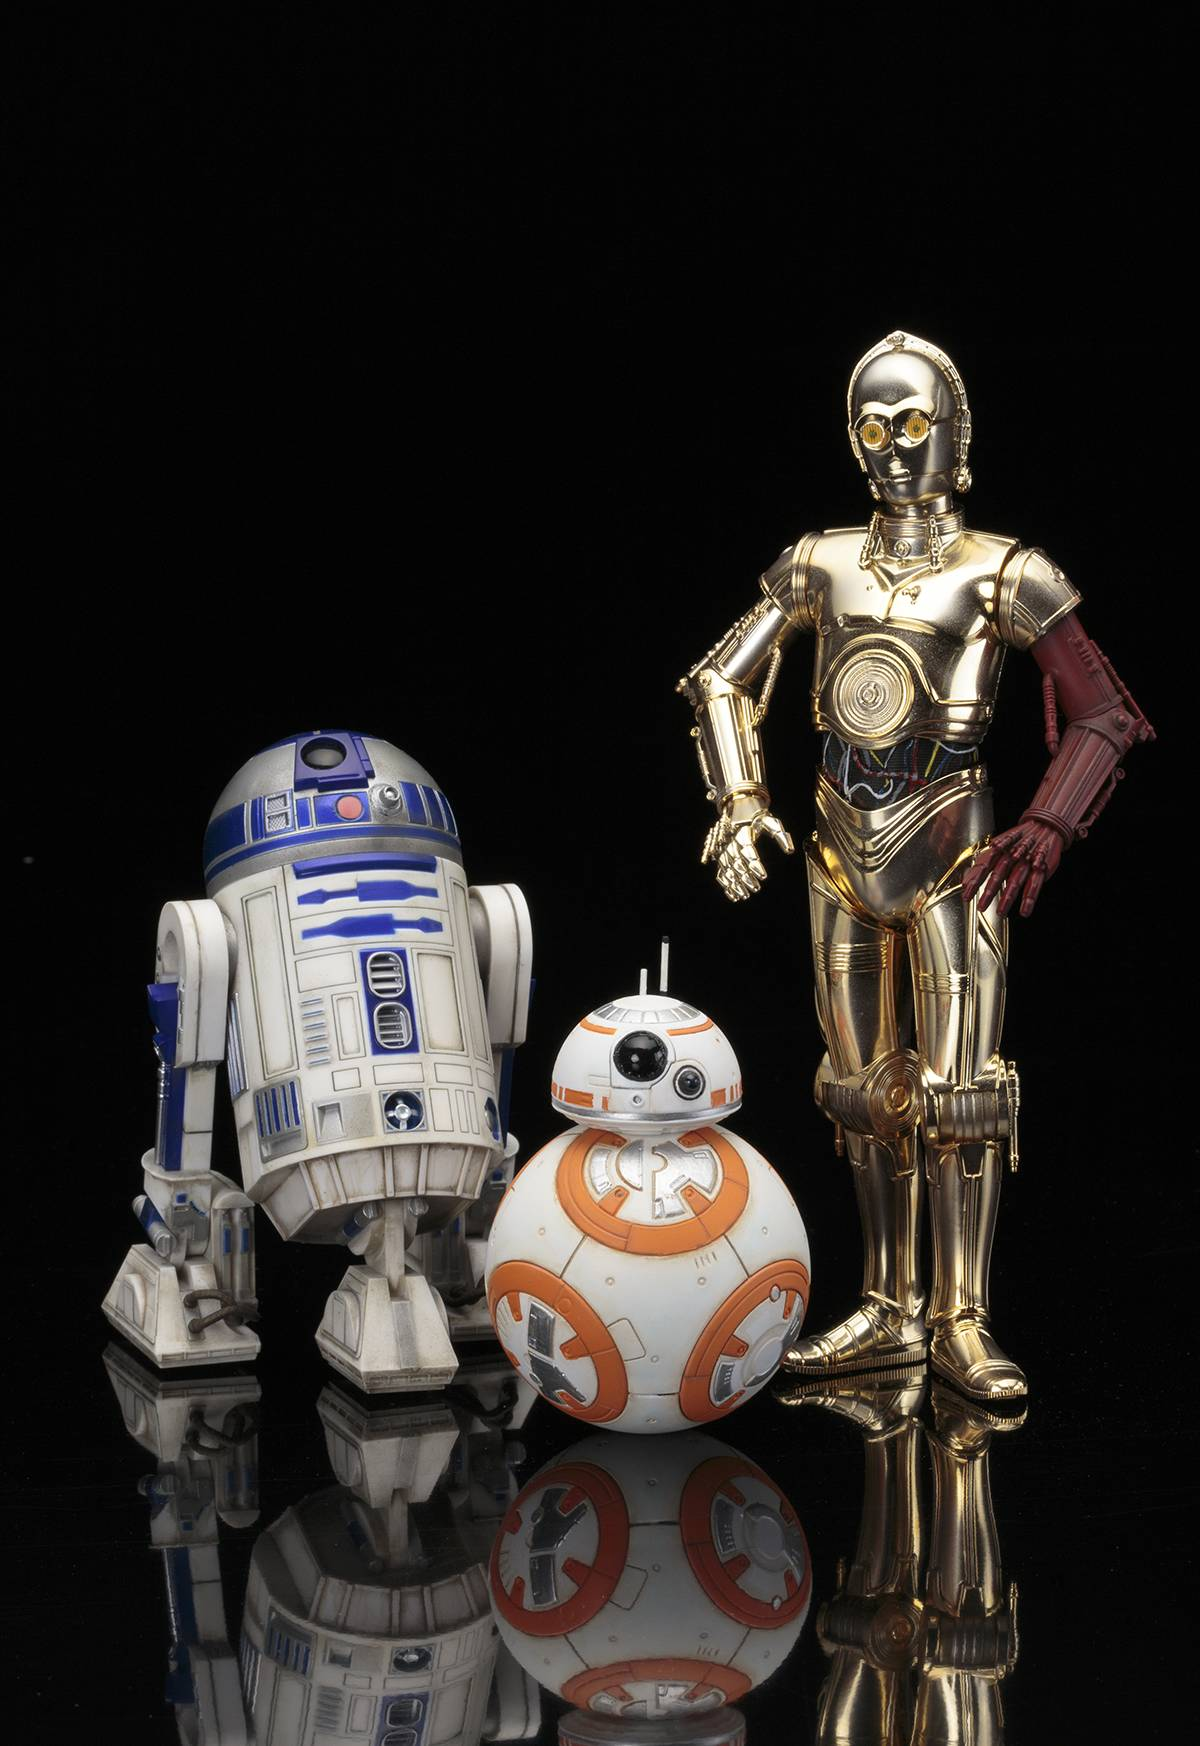 The chrome droid C3PO and the astromech droid R2D2 were in every core Star Wars film. Even BB8, bouncing about in later films, is fun (Disney)